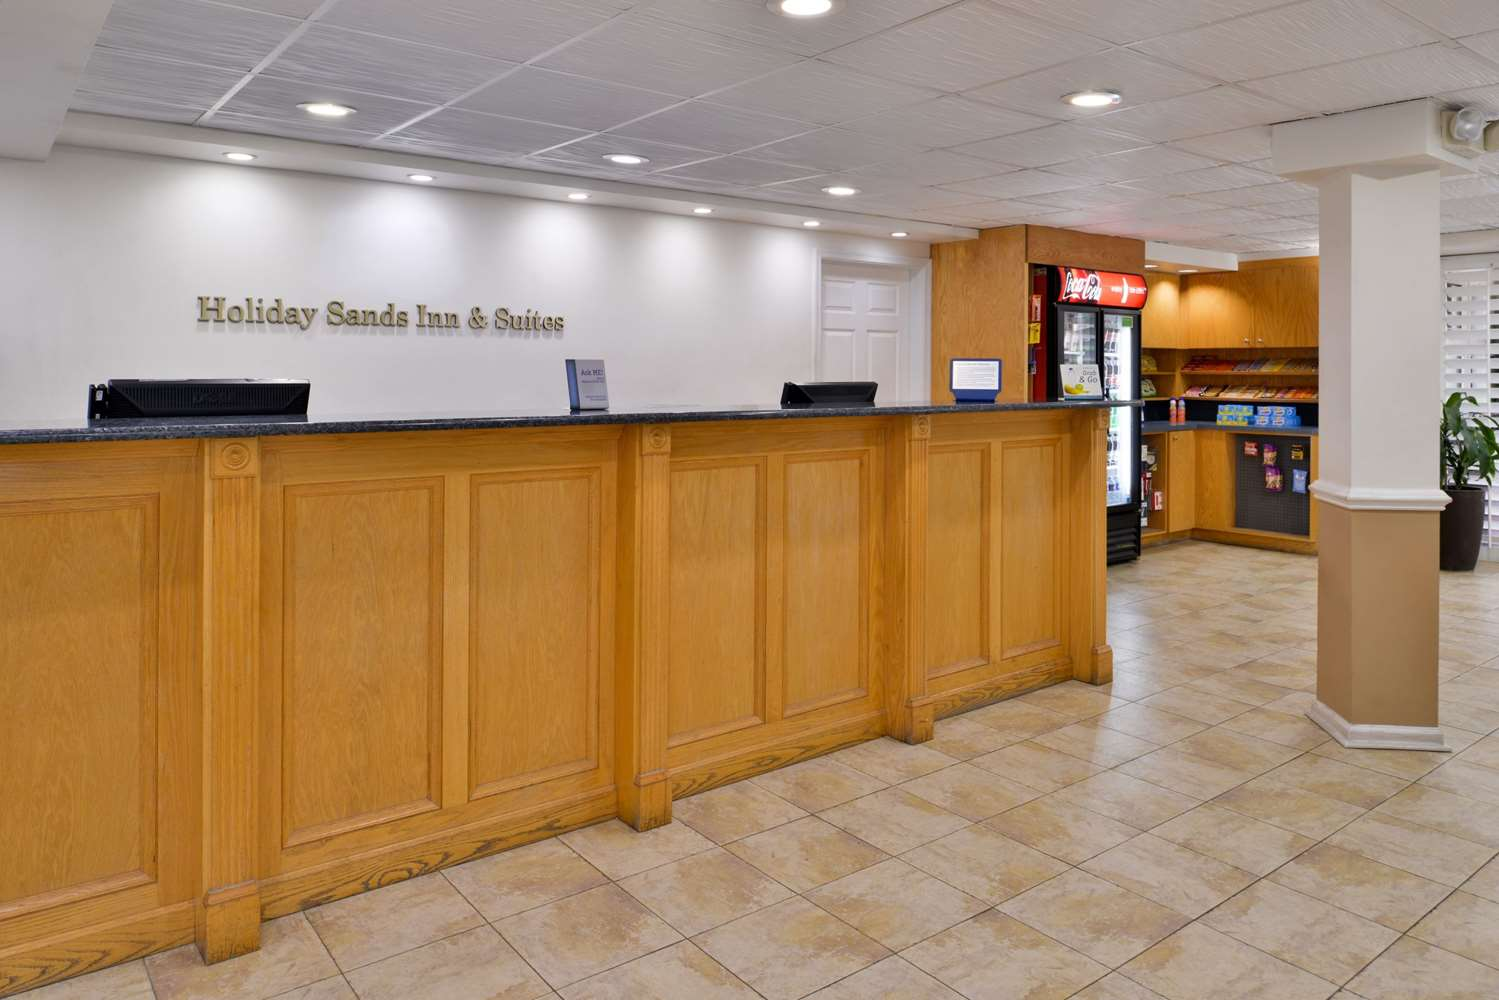 Lobby - Best Western Plus Holiday Sands Inn & Suites Norfolk